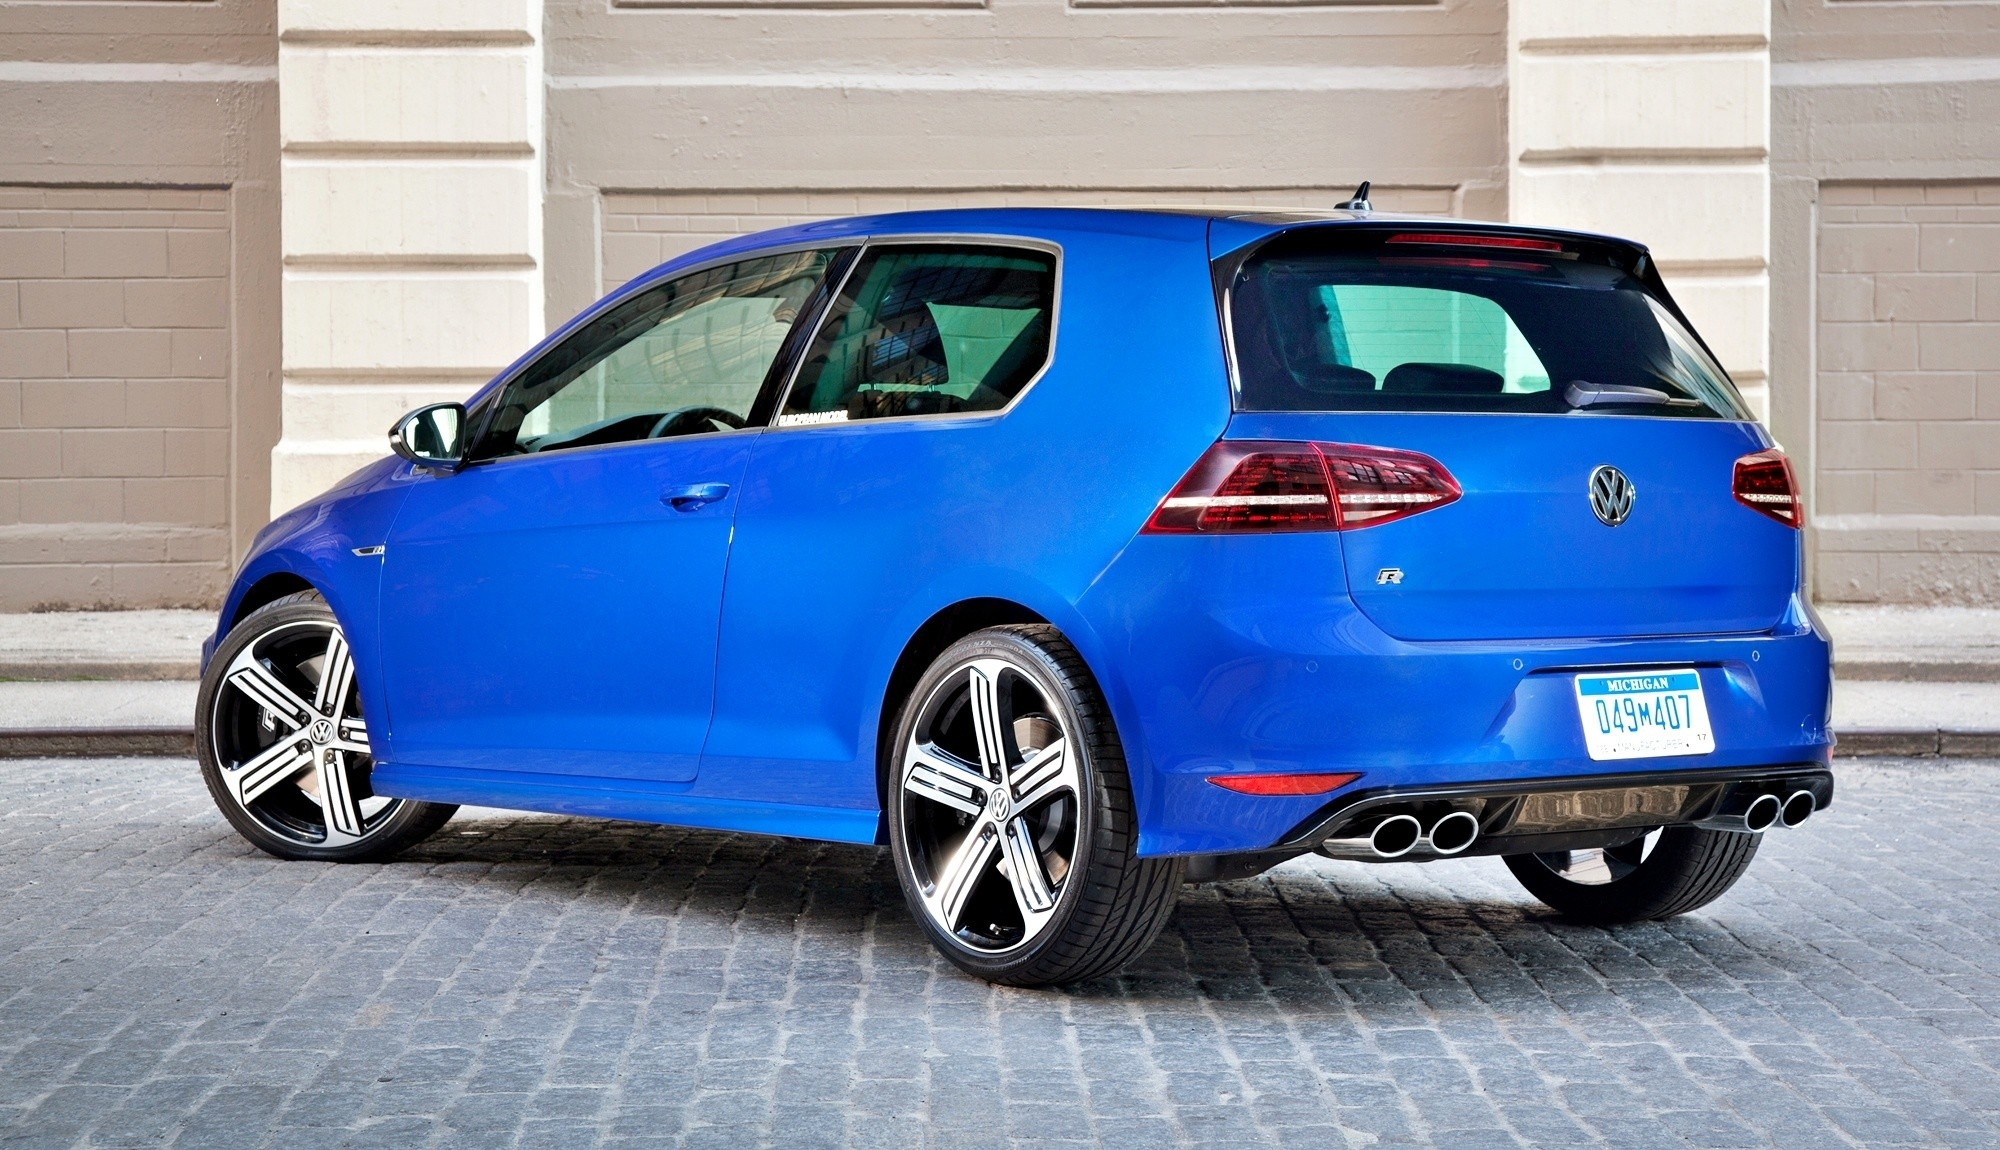 2015 vw golf r officially coming to usa in january with at least 290hp. Black Bedroom Furniture Sets. Home Design Ideas